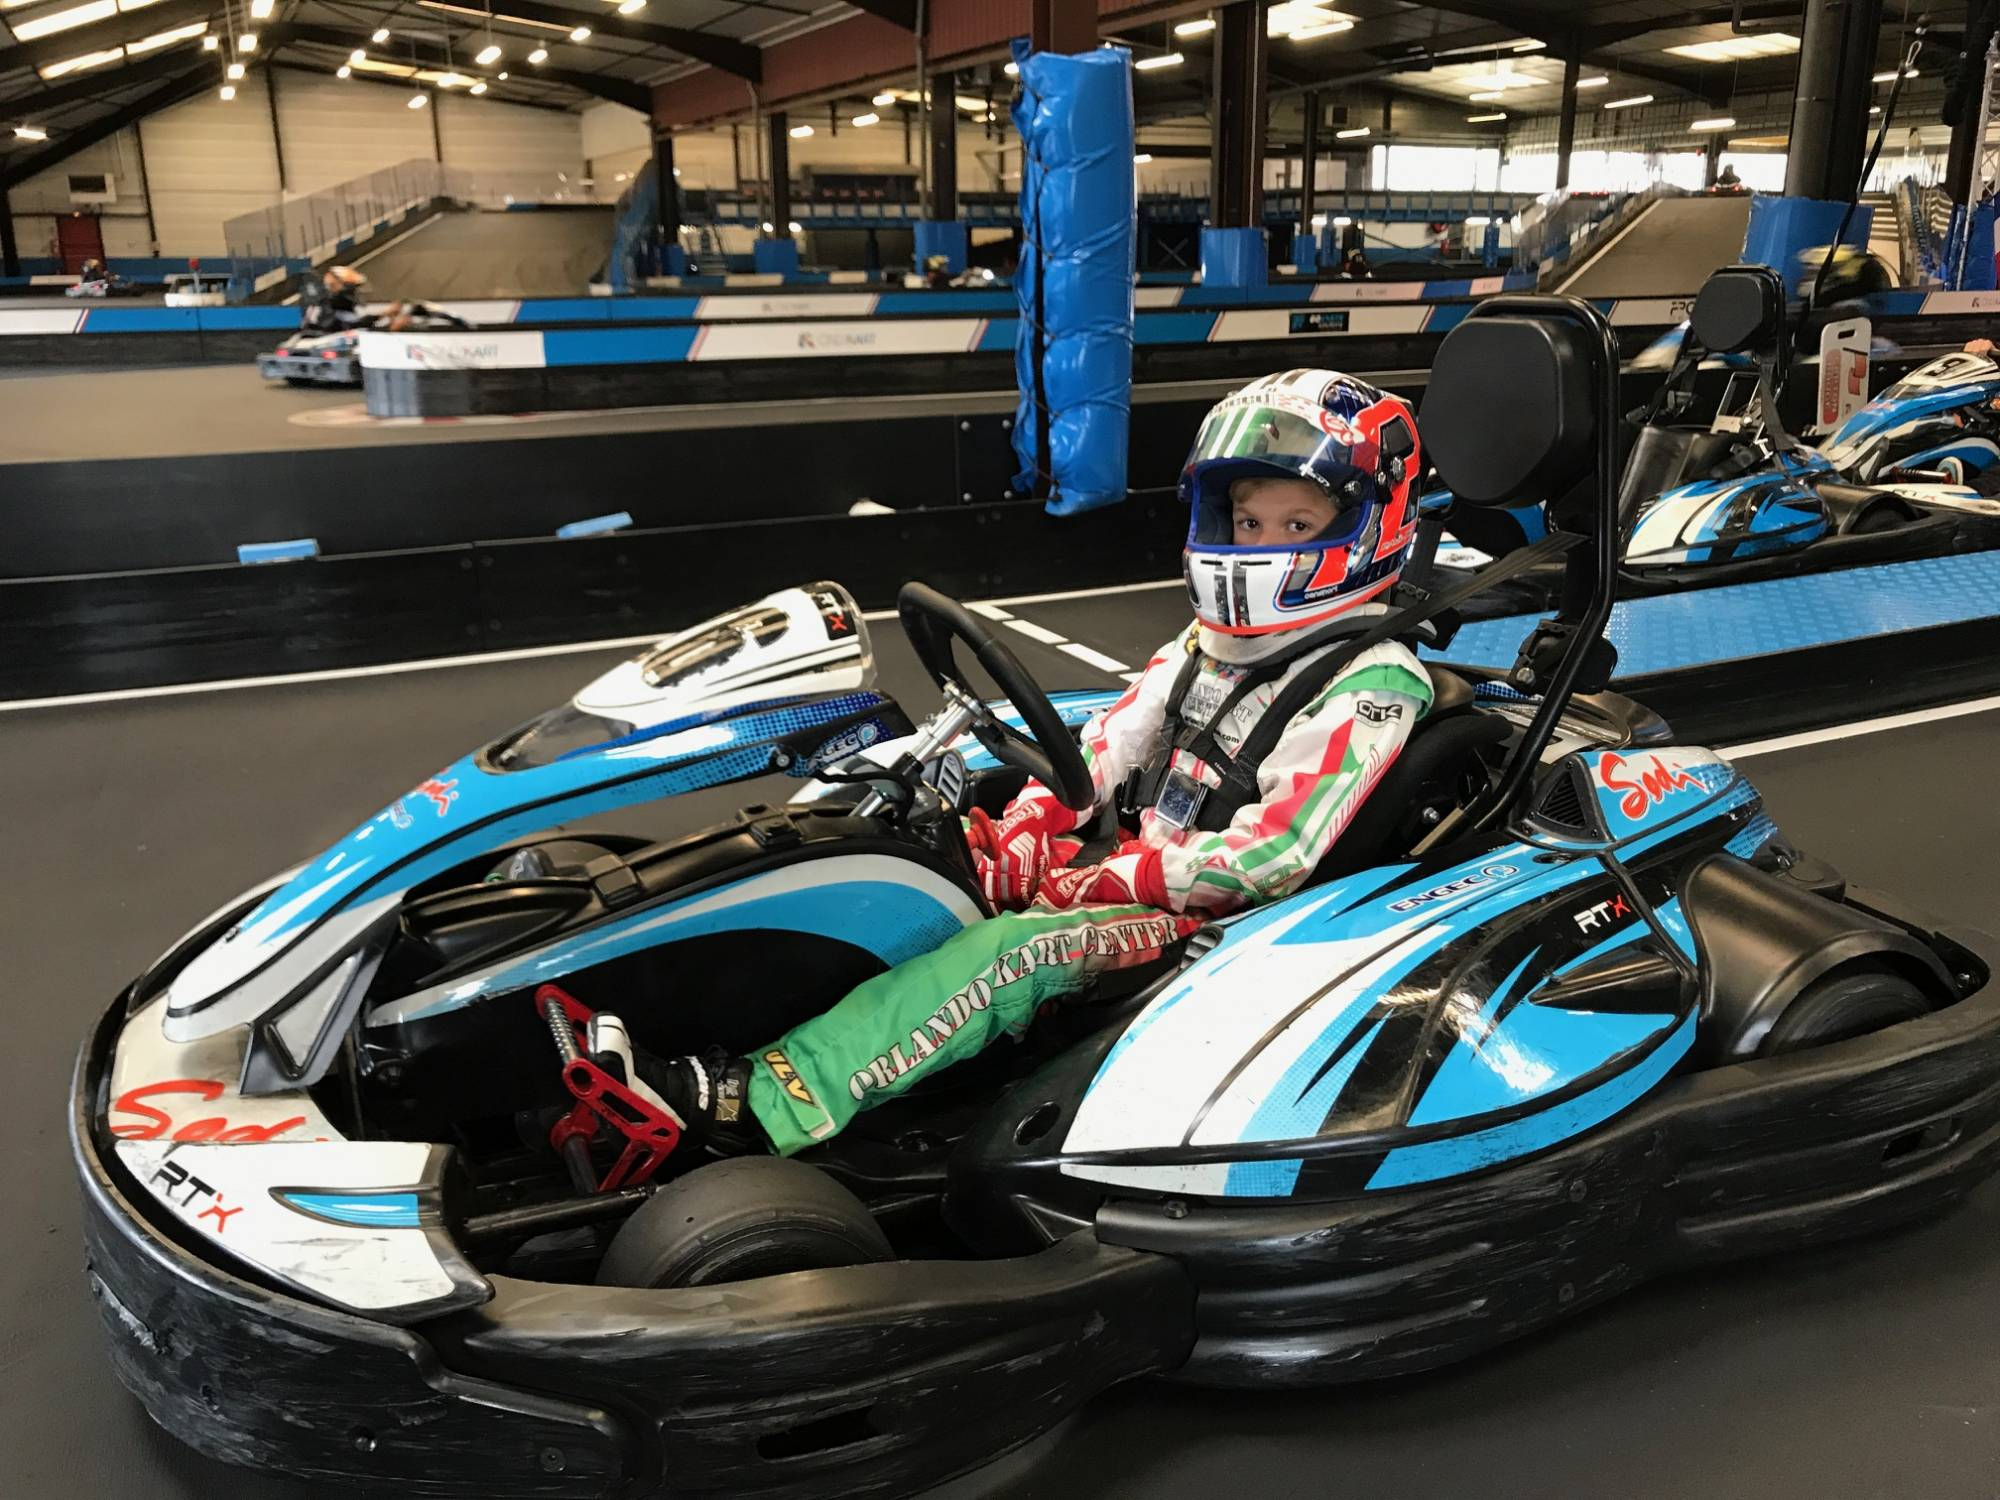 Paul Bocuse junior au karting électrique lyon